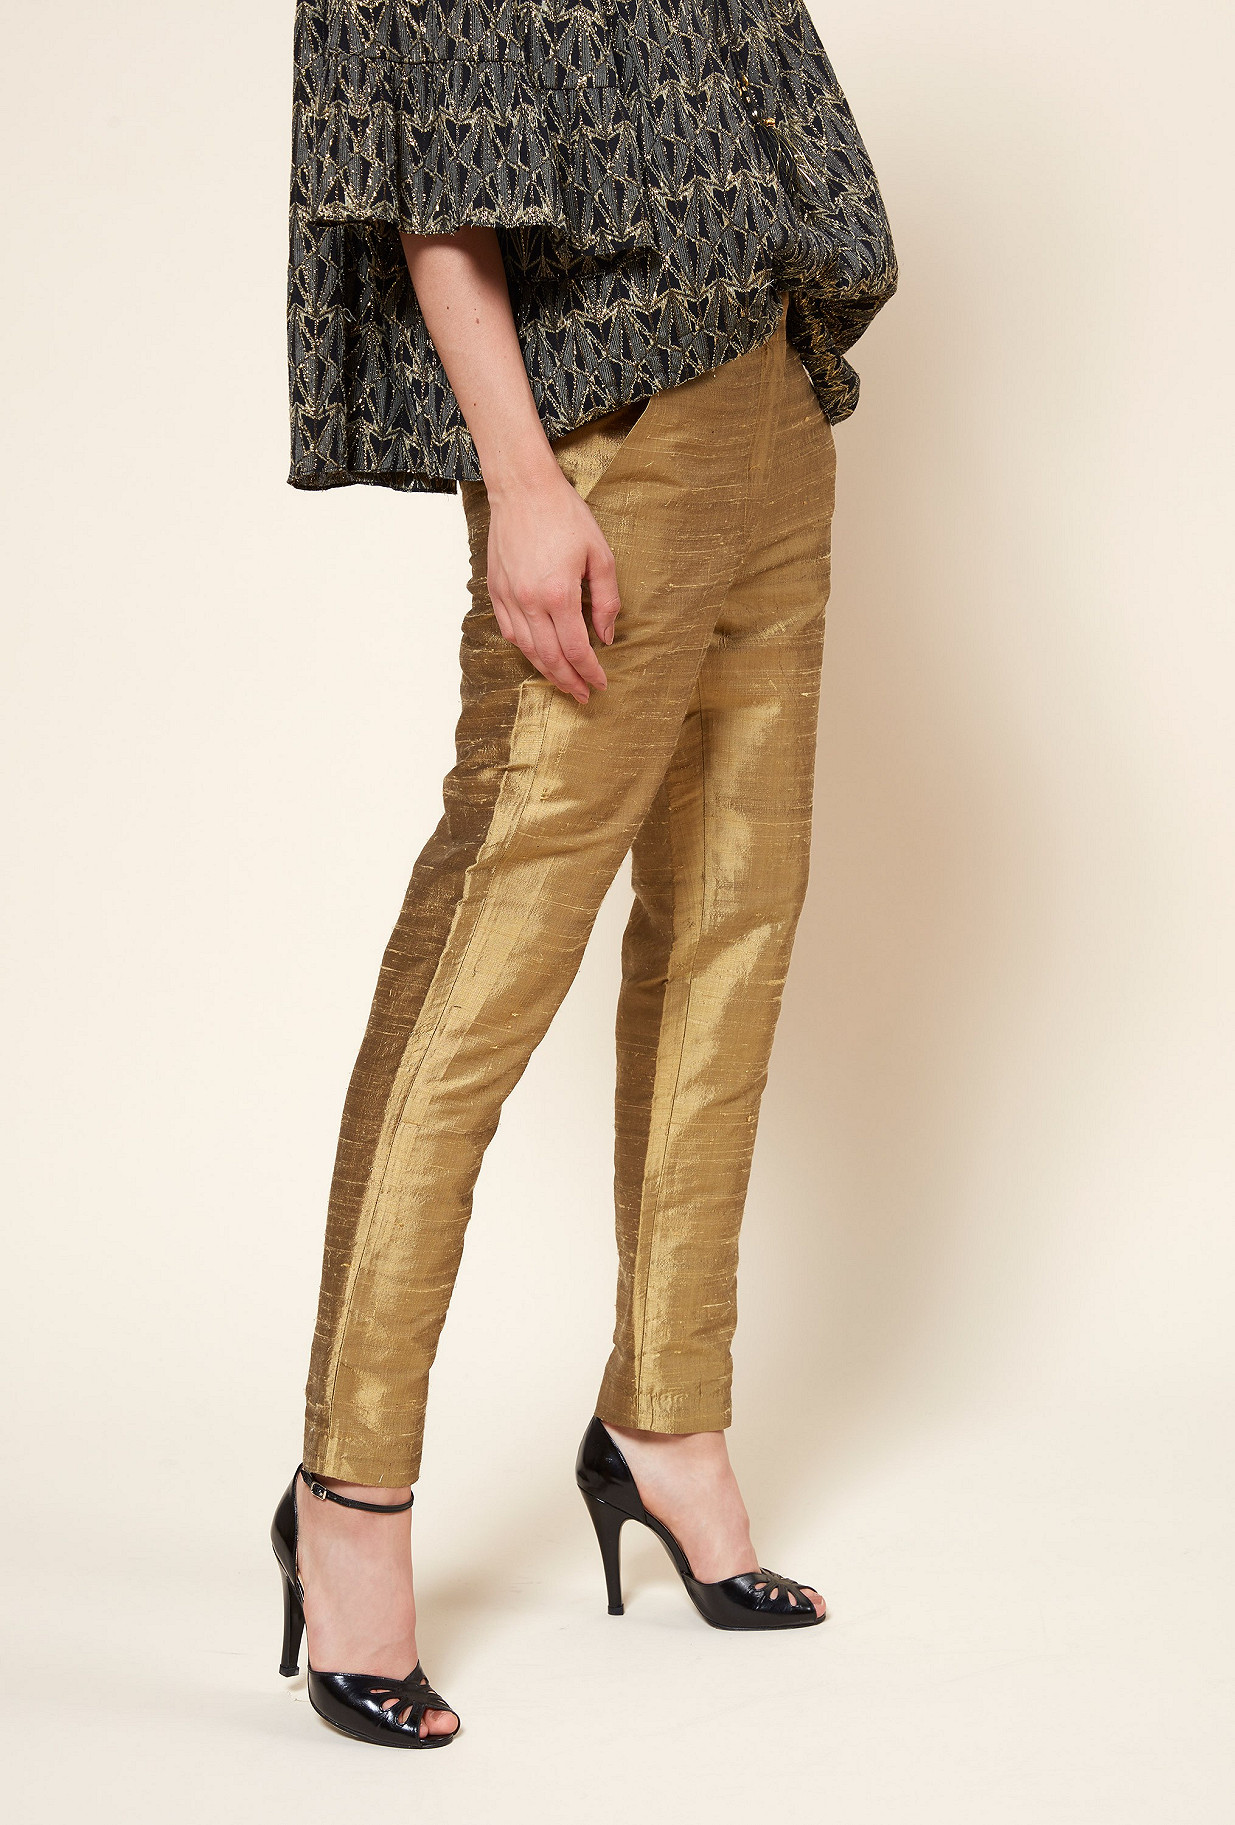 clothes store PANT  Goldie french designer fashion Paris